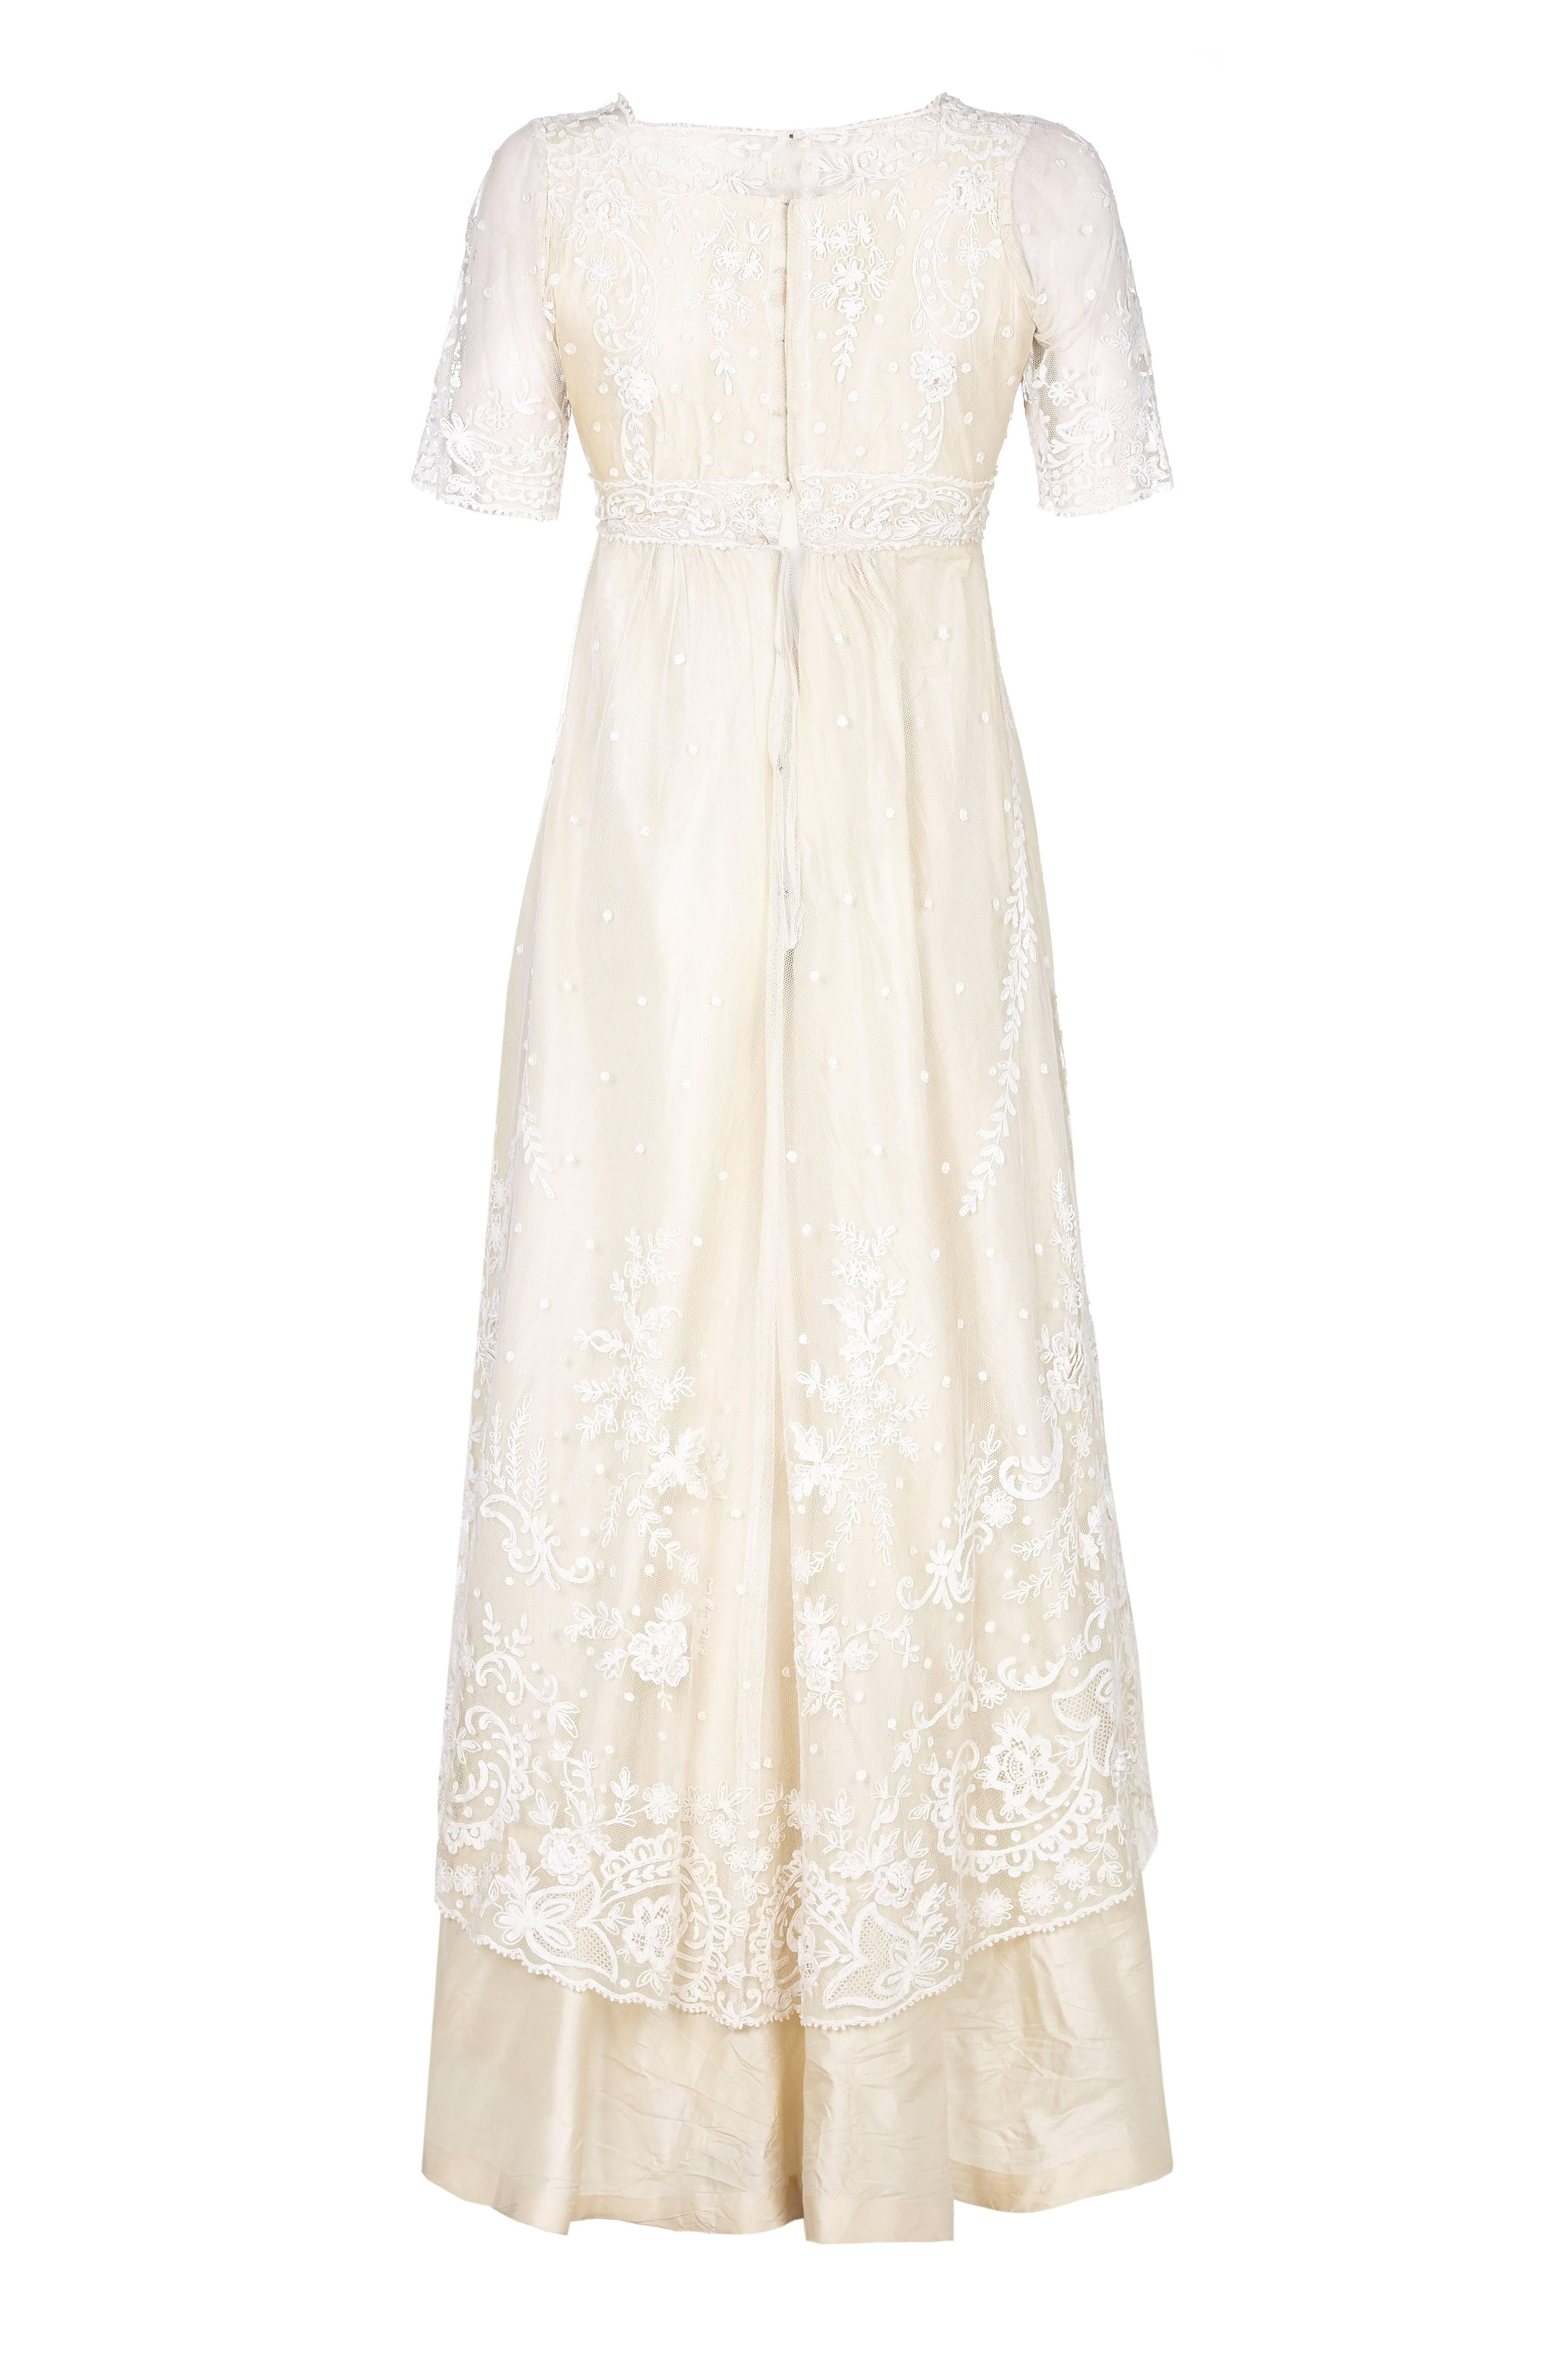 Pristine Edwardian Hand Made Lace and Silk Wedding Dress For Sale at ...